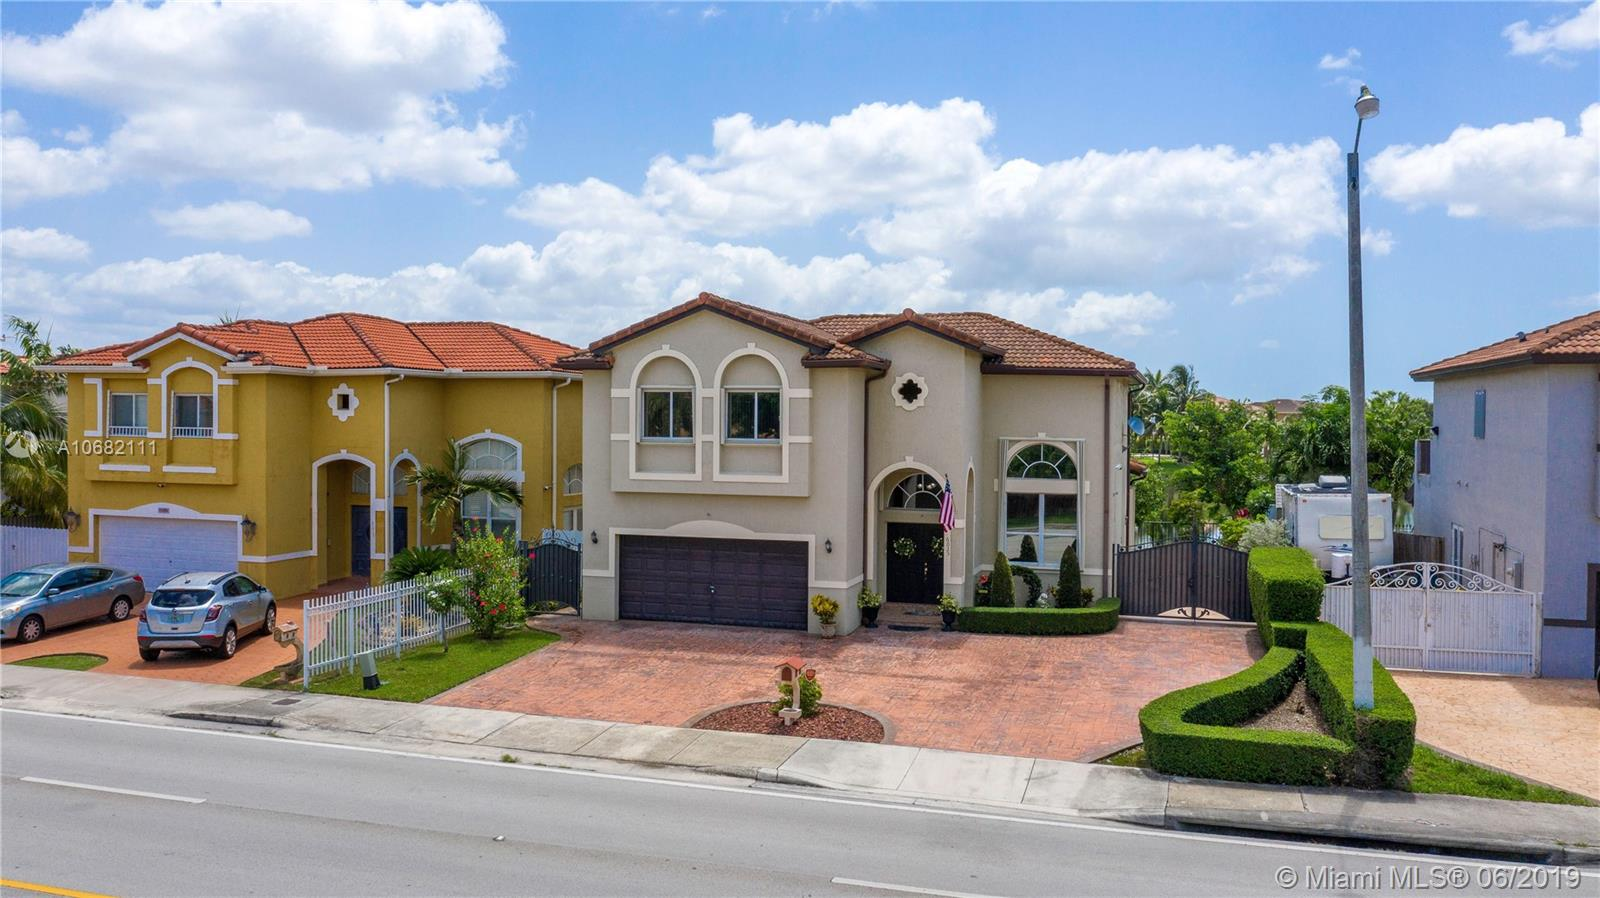 6025 SW 162nd Ave, Kendall West, Florida